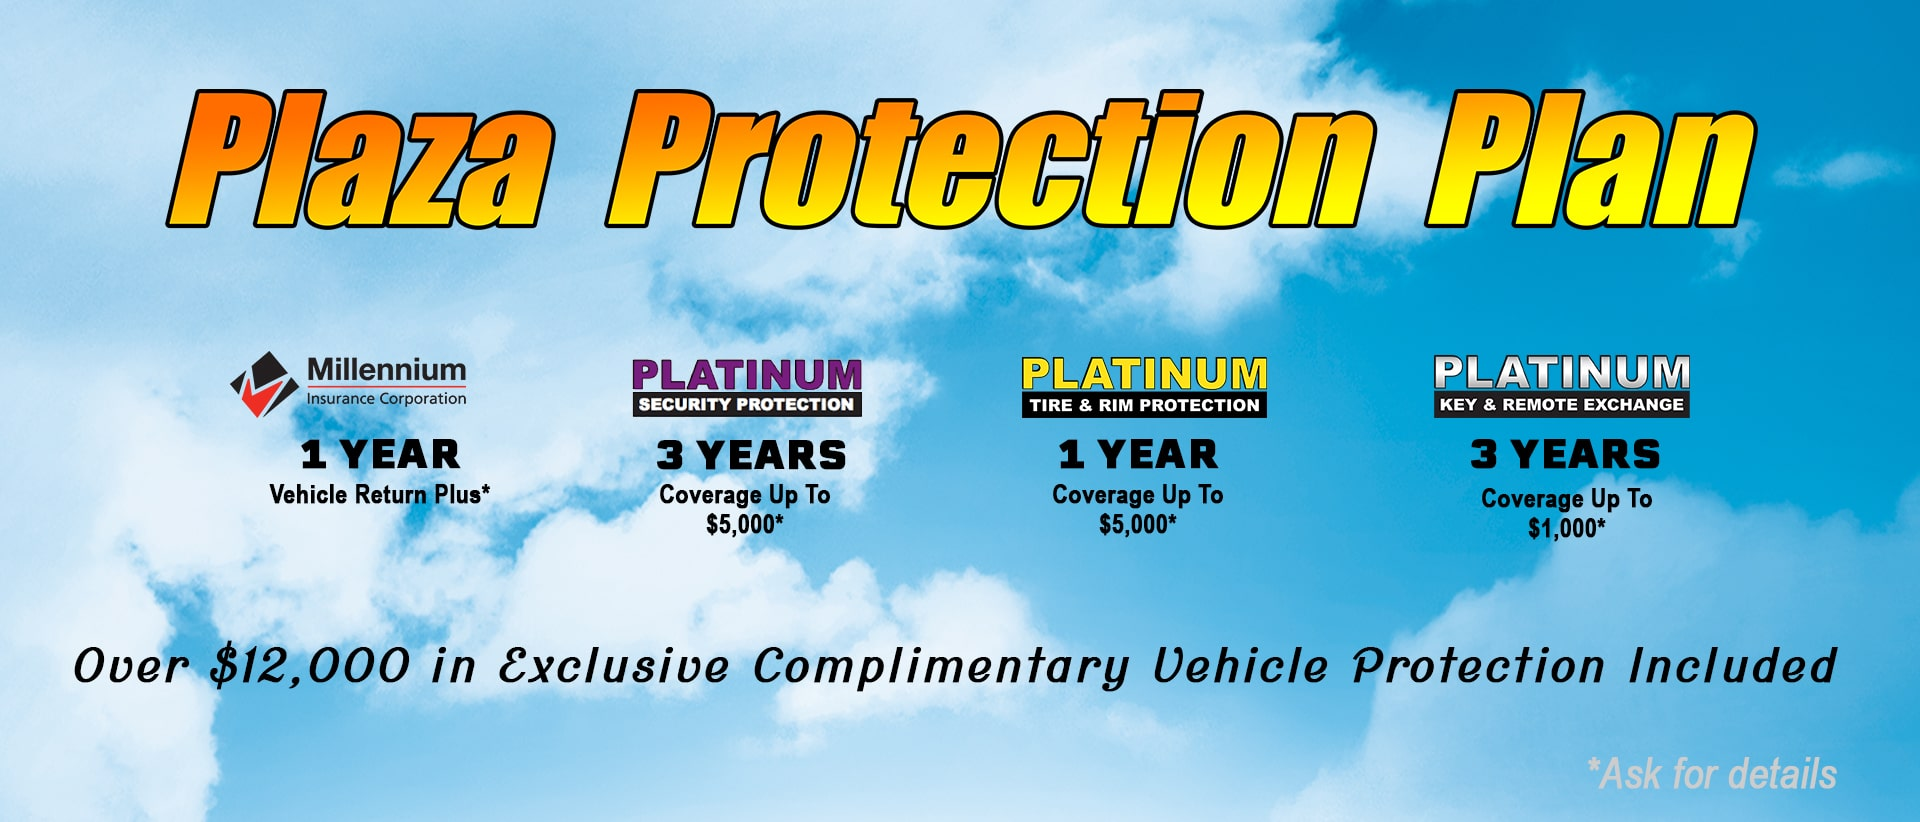 Plaza Protection Plan For Peace Of Mind Vehicle Ownership